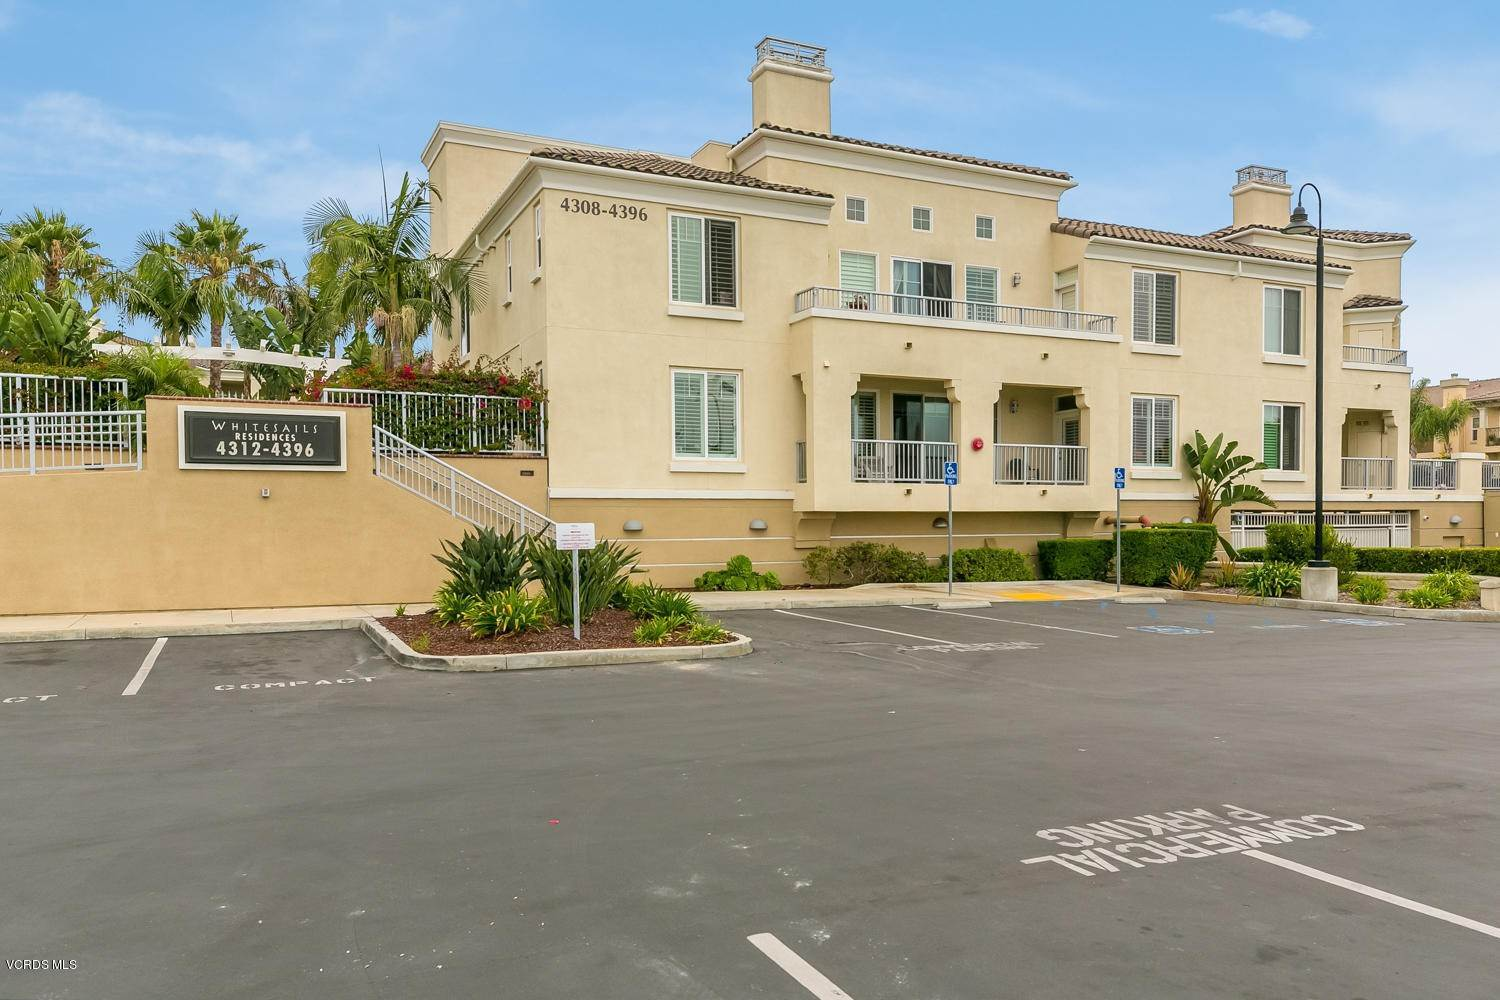 31. Condominiums for Sale at 4366 Tradewinds Drive Oxnard, California 93035 United States